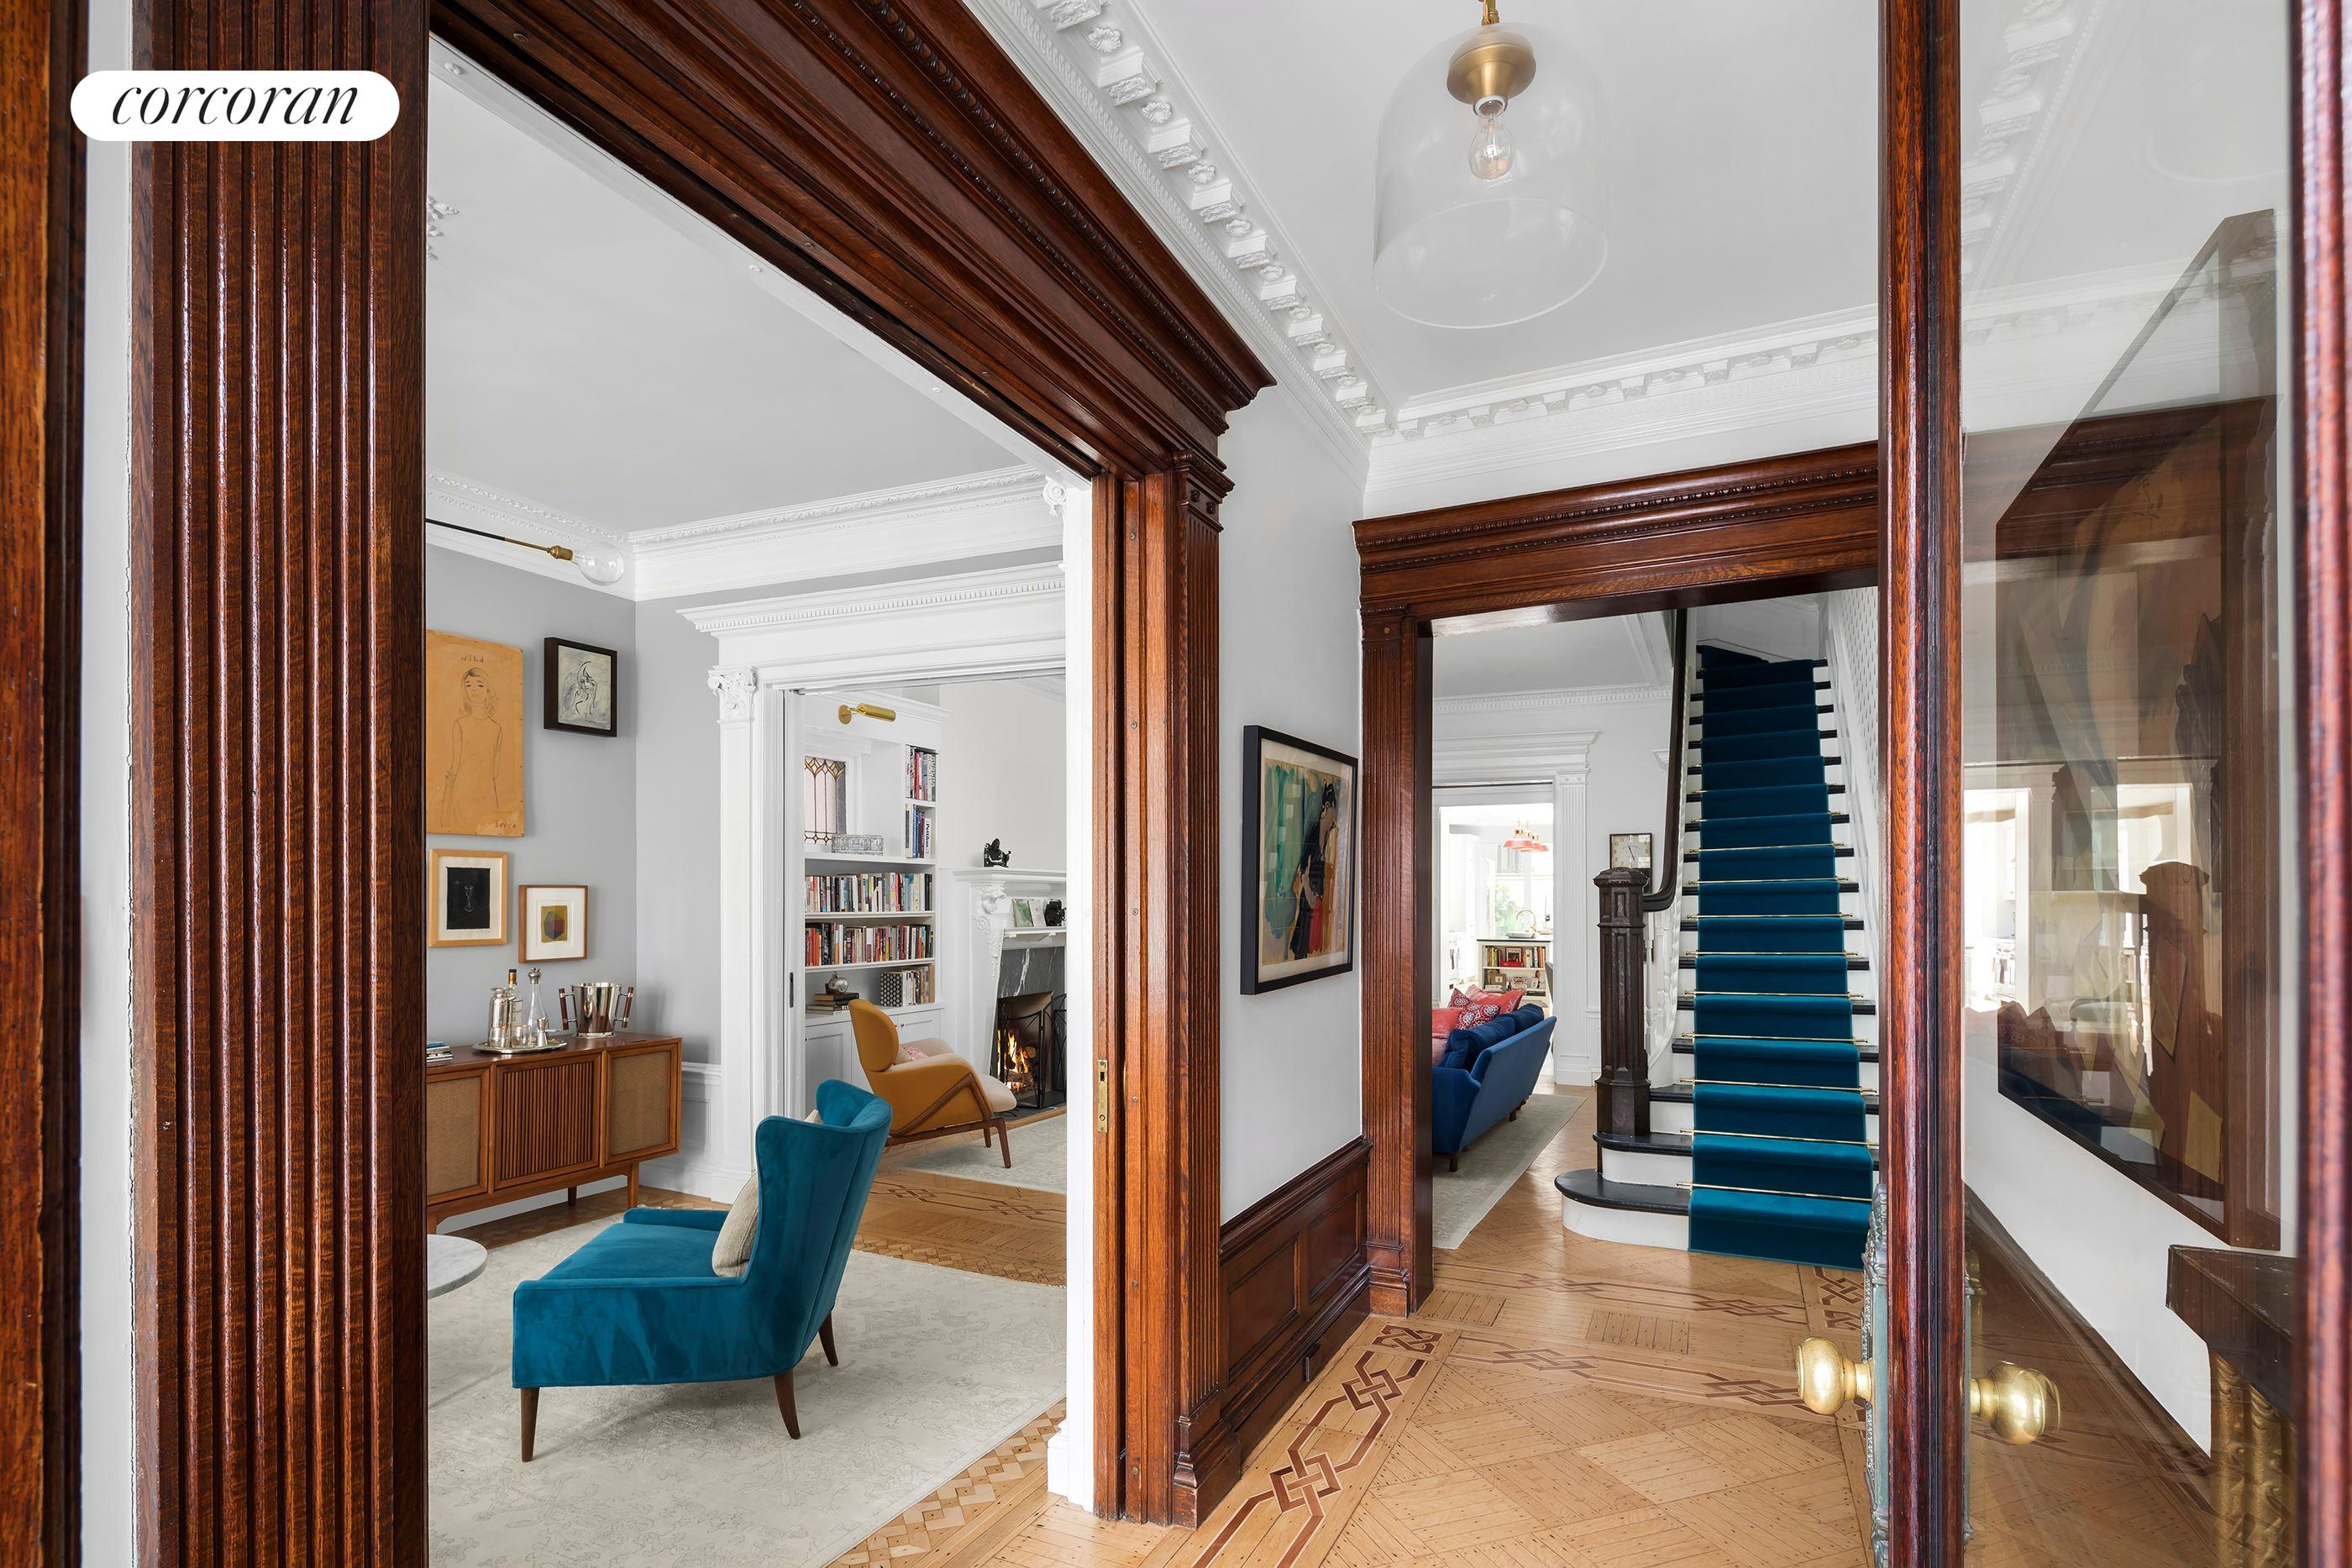 586 4th Street, Front parlor with pier mirror & pocket doors